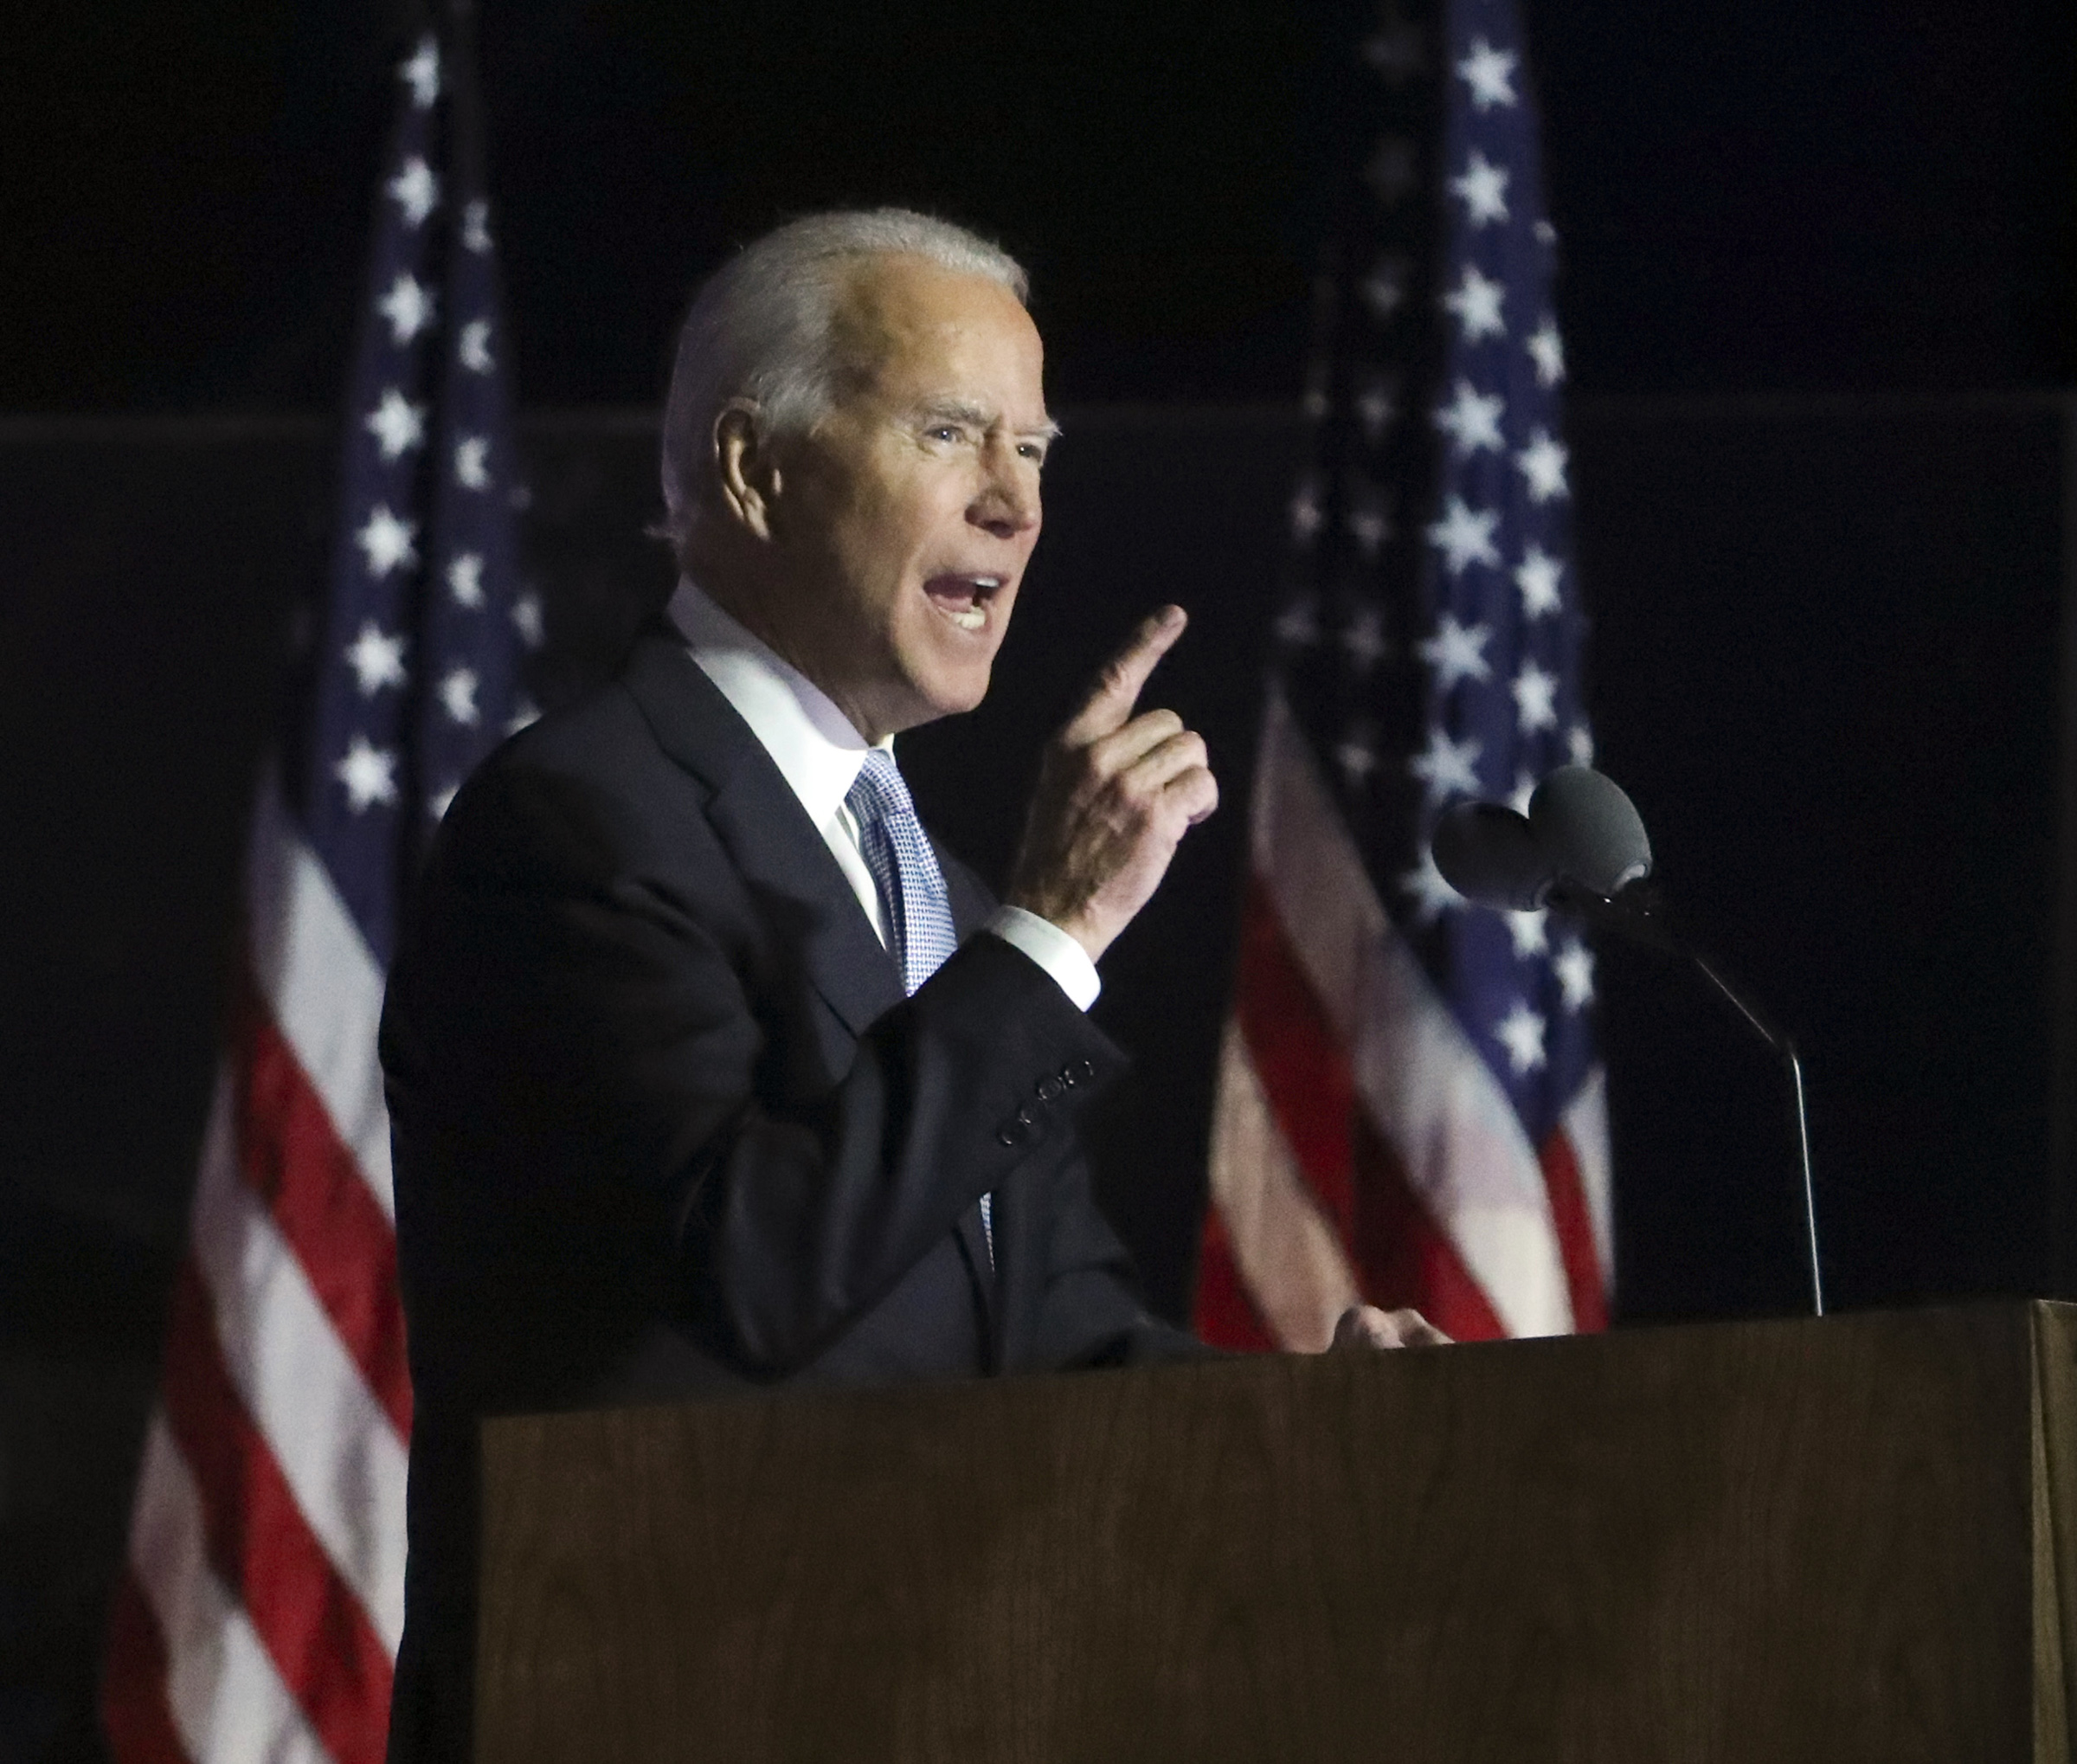 President Joe Biden delivers a victory speech outside the Chase Center in Wilmington, Del. on Nov. 7, 2020.